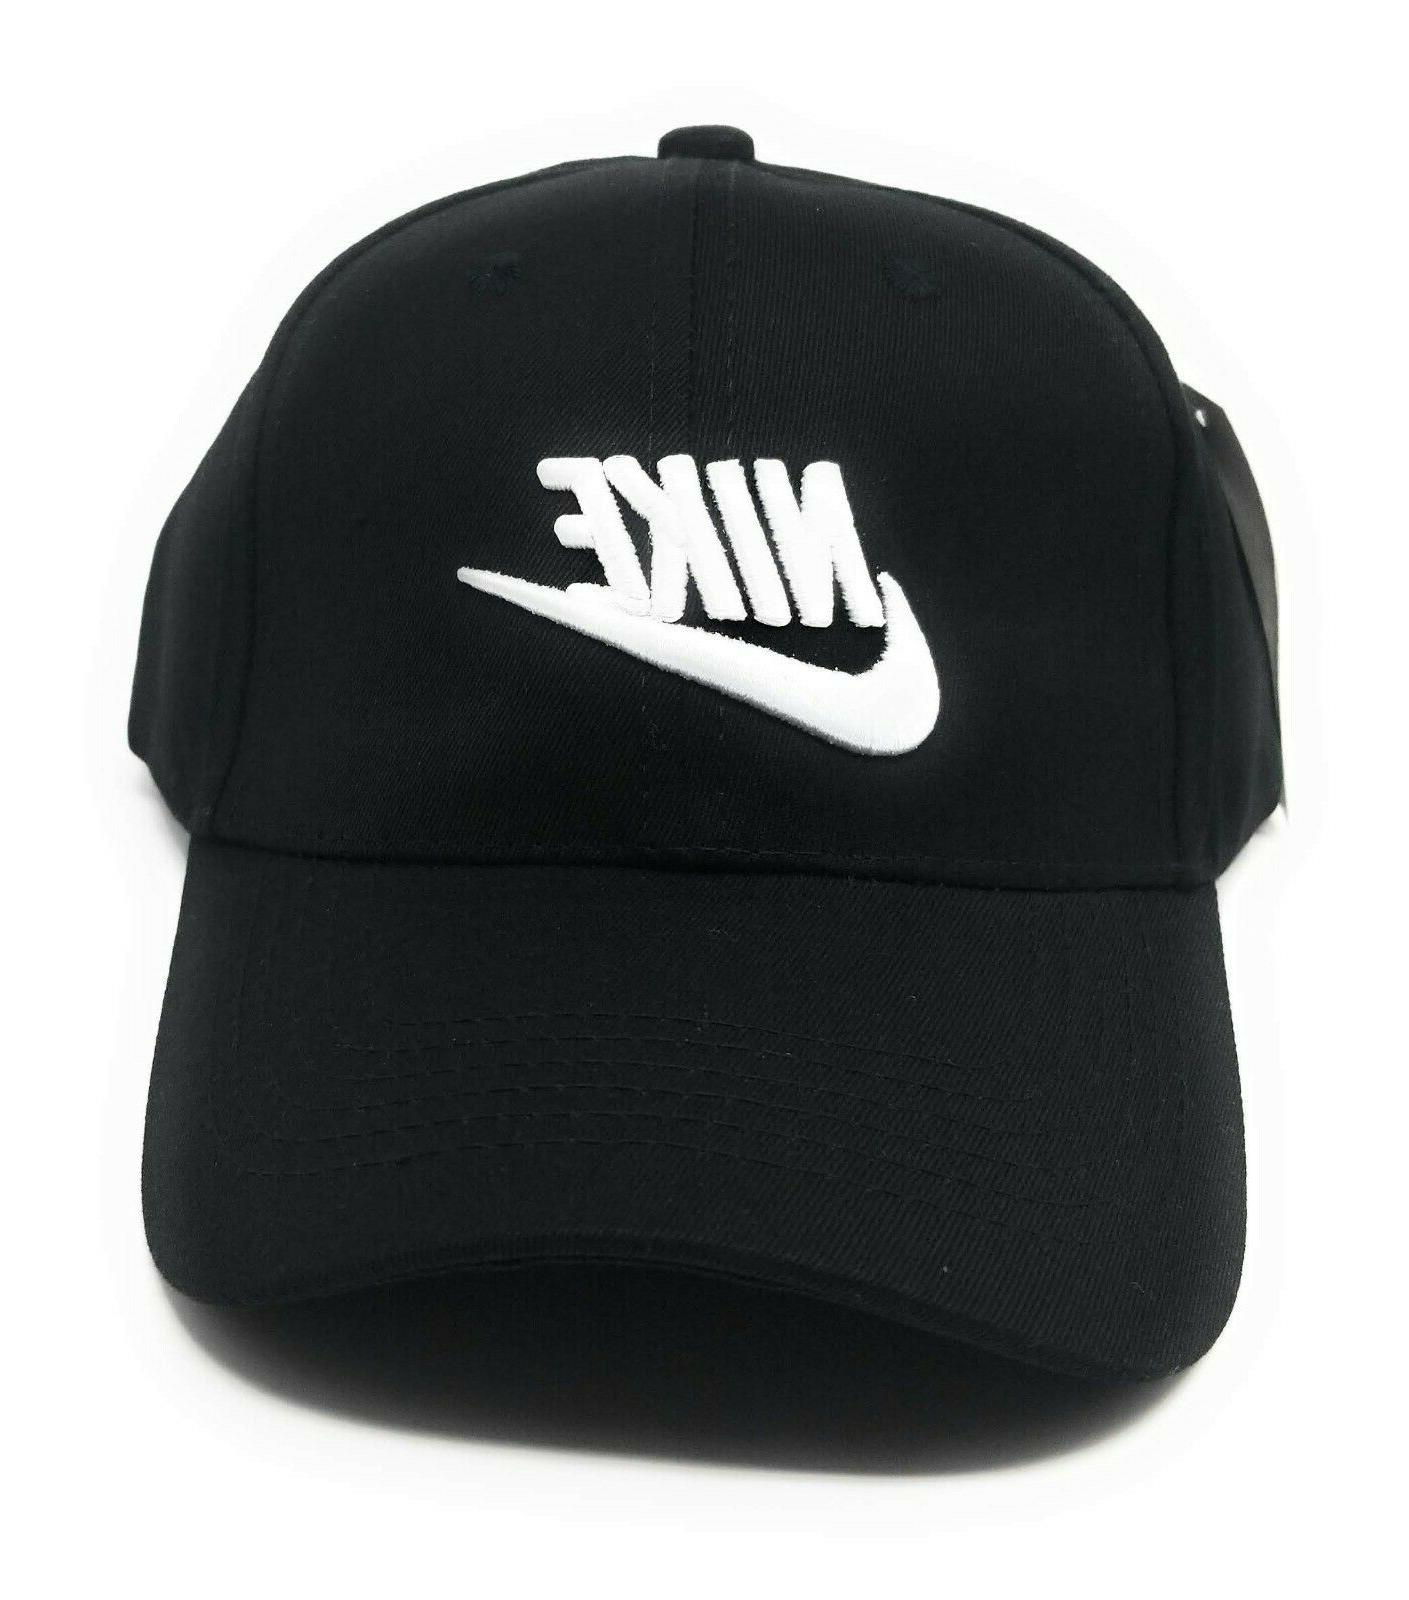 Brand Swoosh Adjustable Size Dad